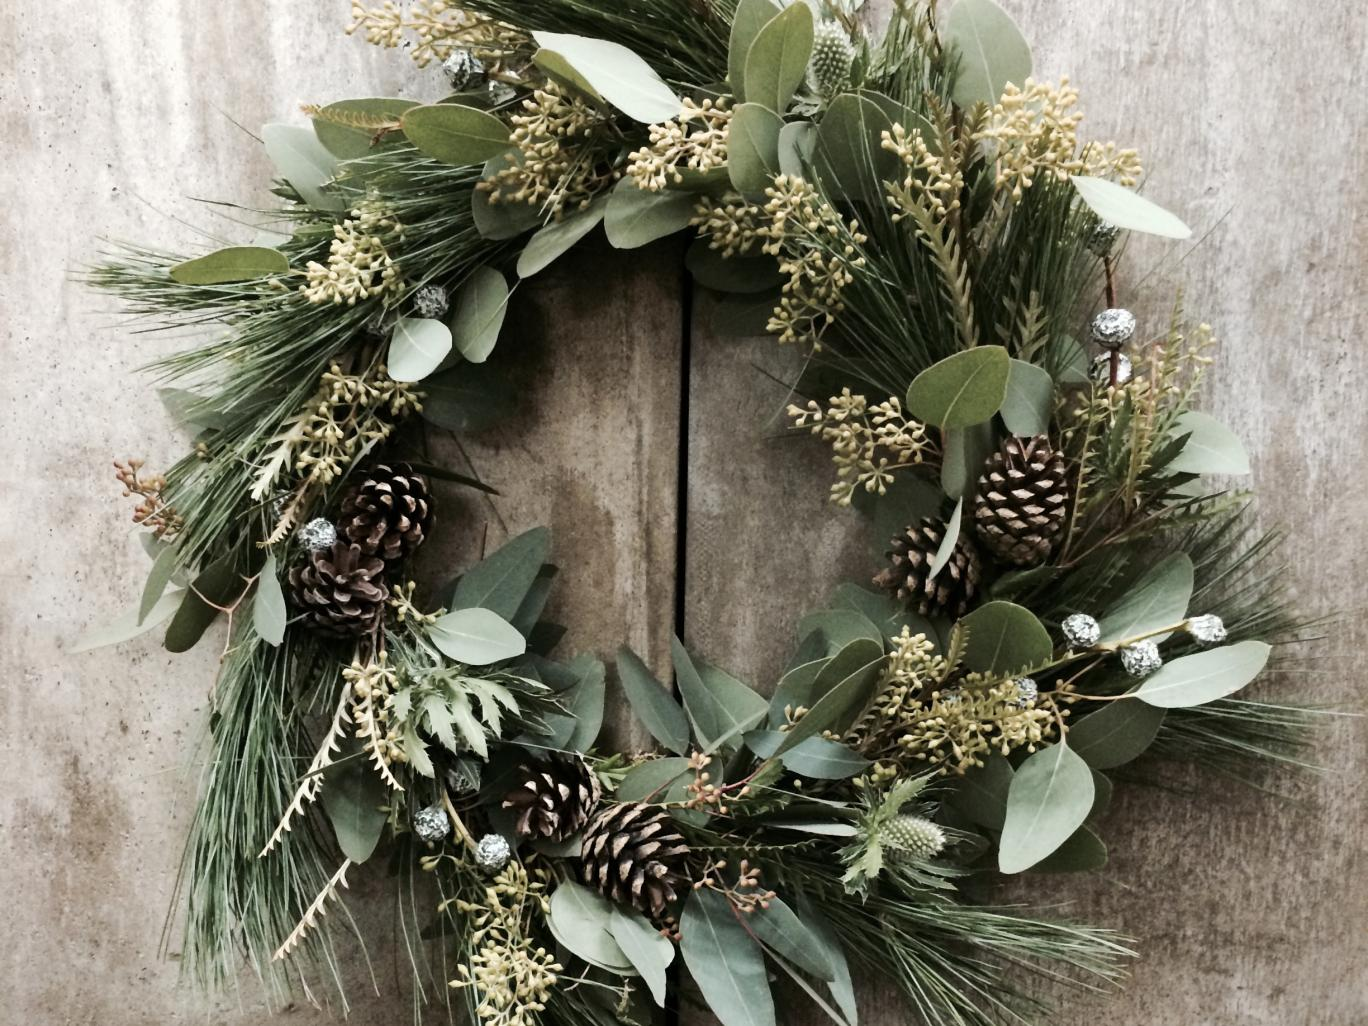 inspirationseek ideas your in to with com leaf make home decor decorated christmas wreaths artificial